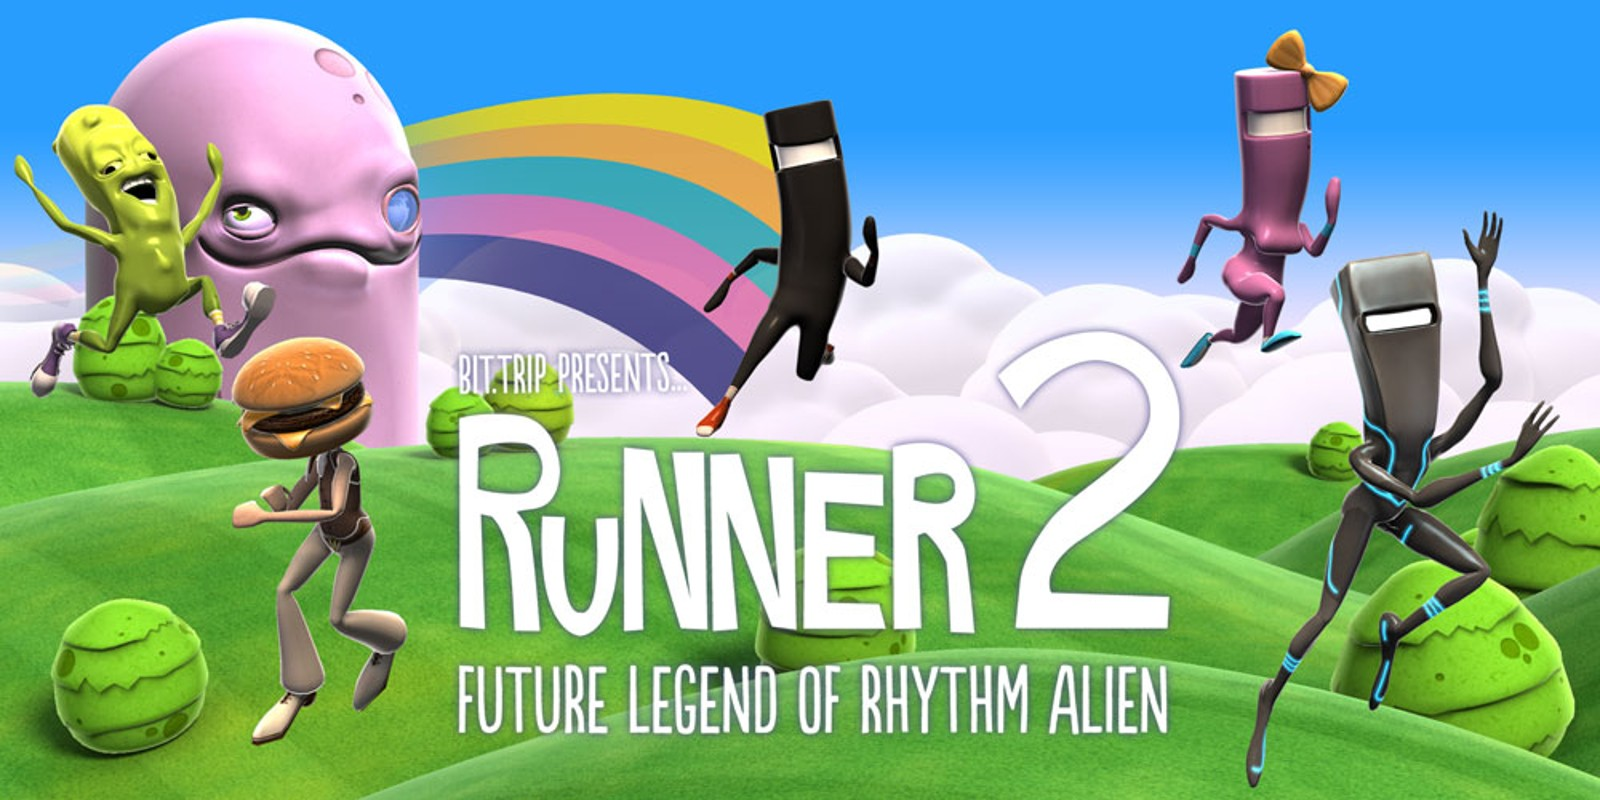 BIT.TRIP Presents Runner2: Future Legend of Rhythm Alien review